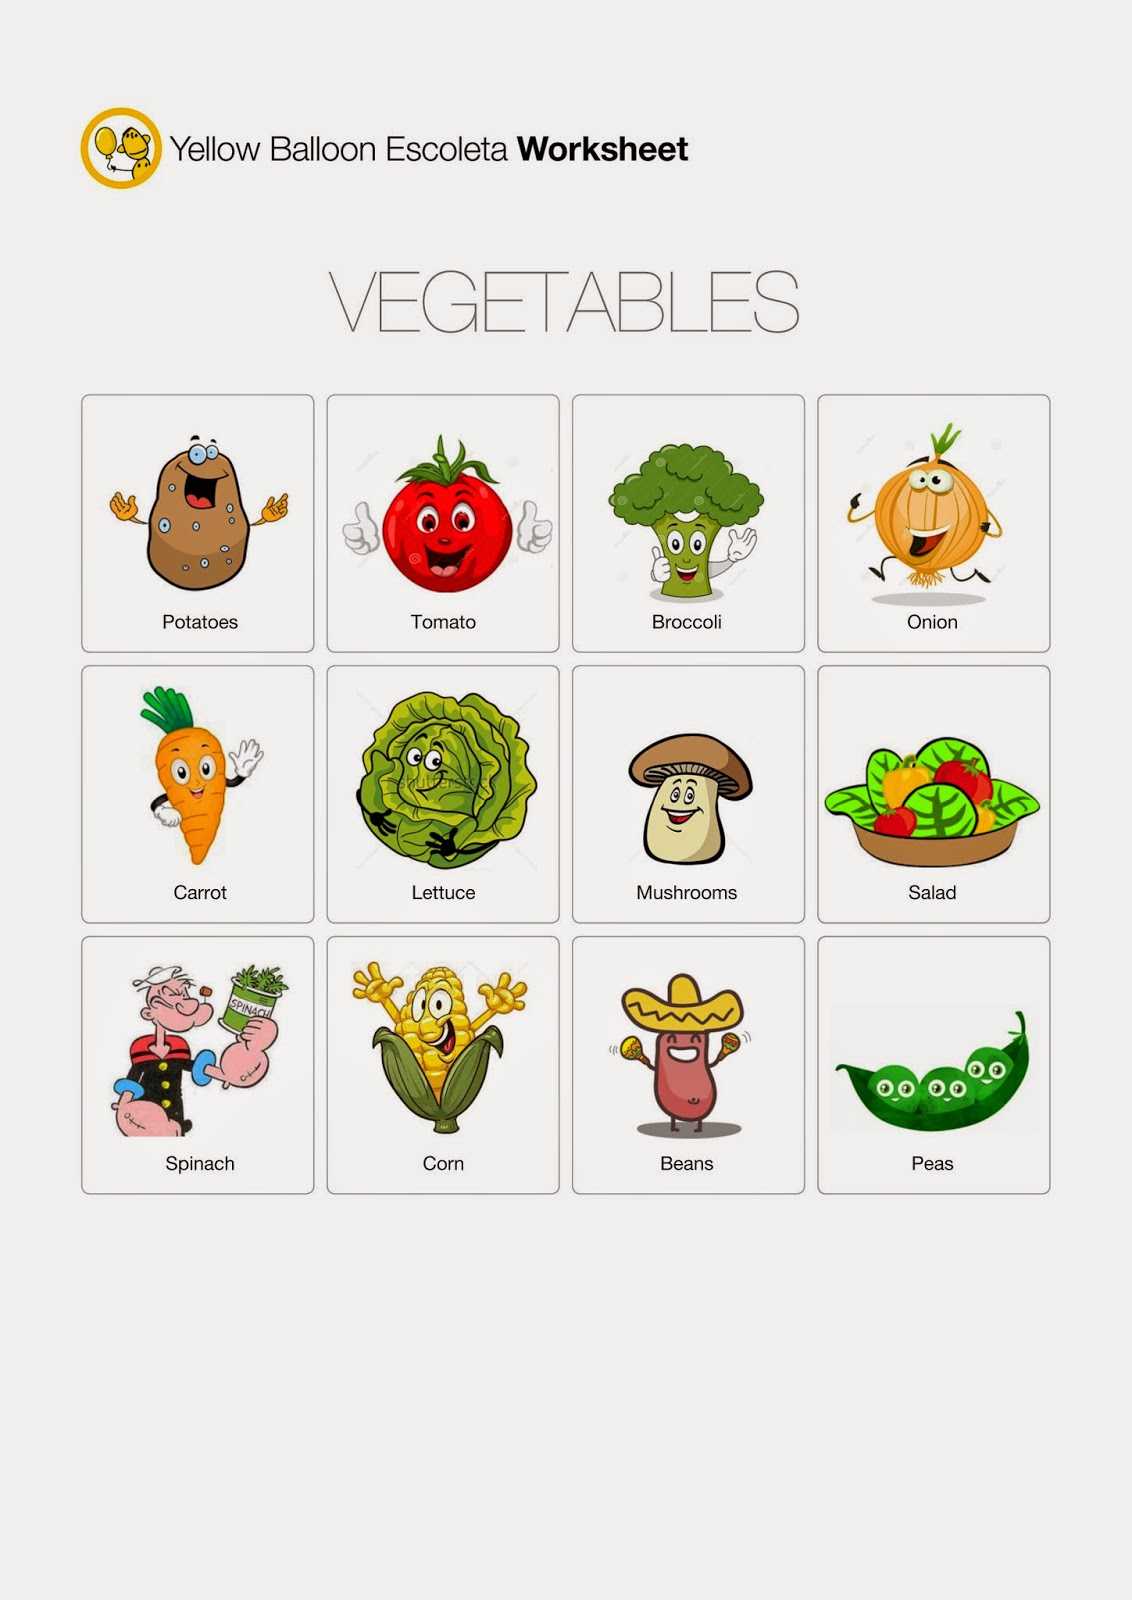 Yellow Balloon Escoleta Vegetables Worksheet